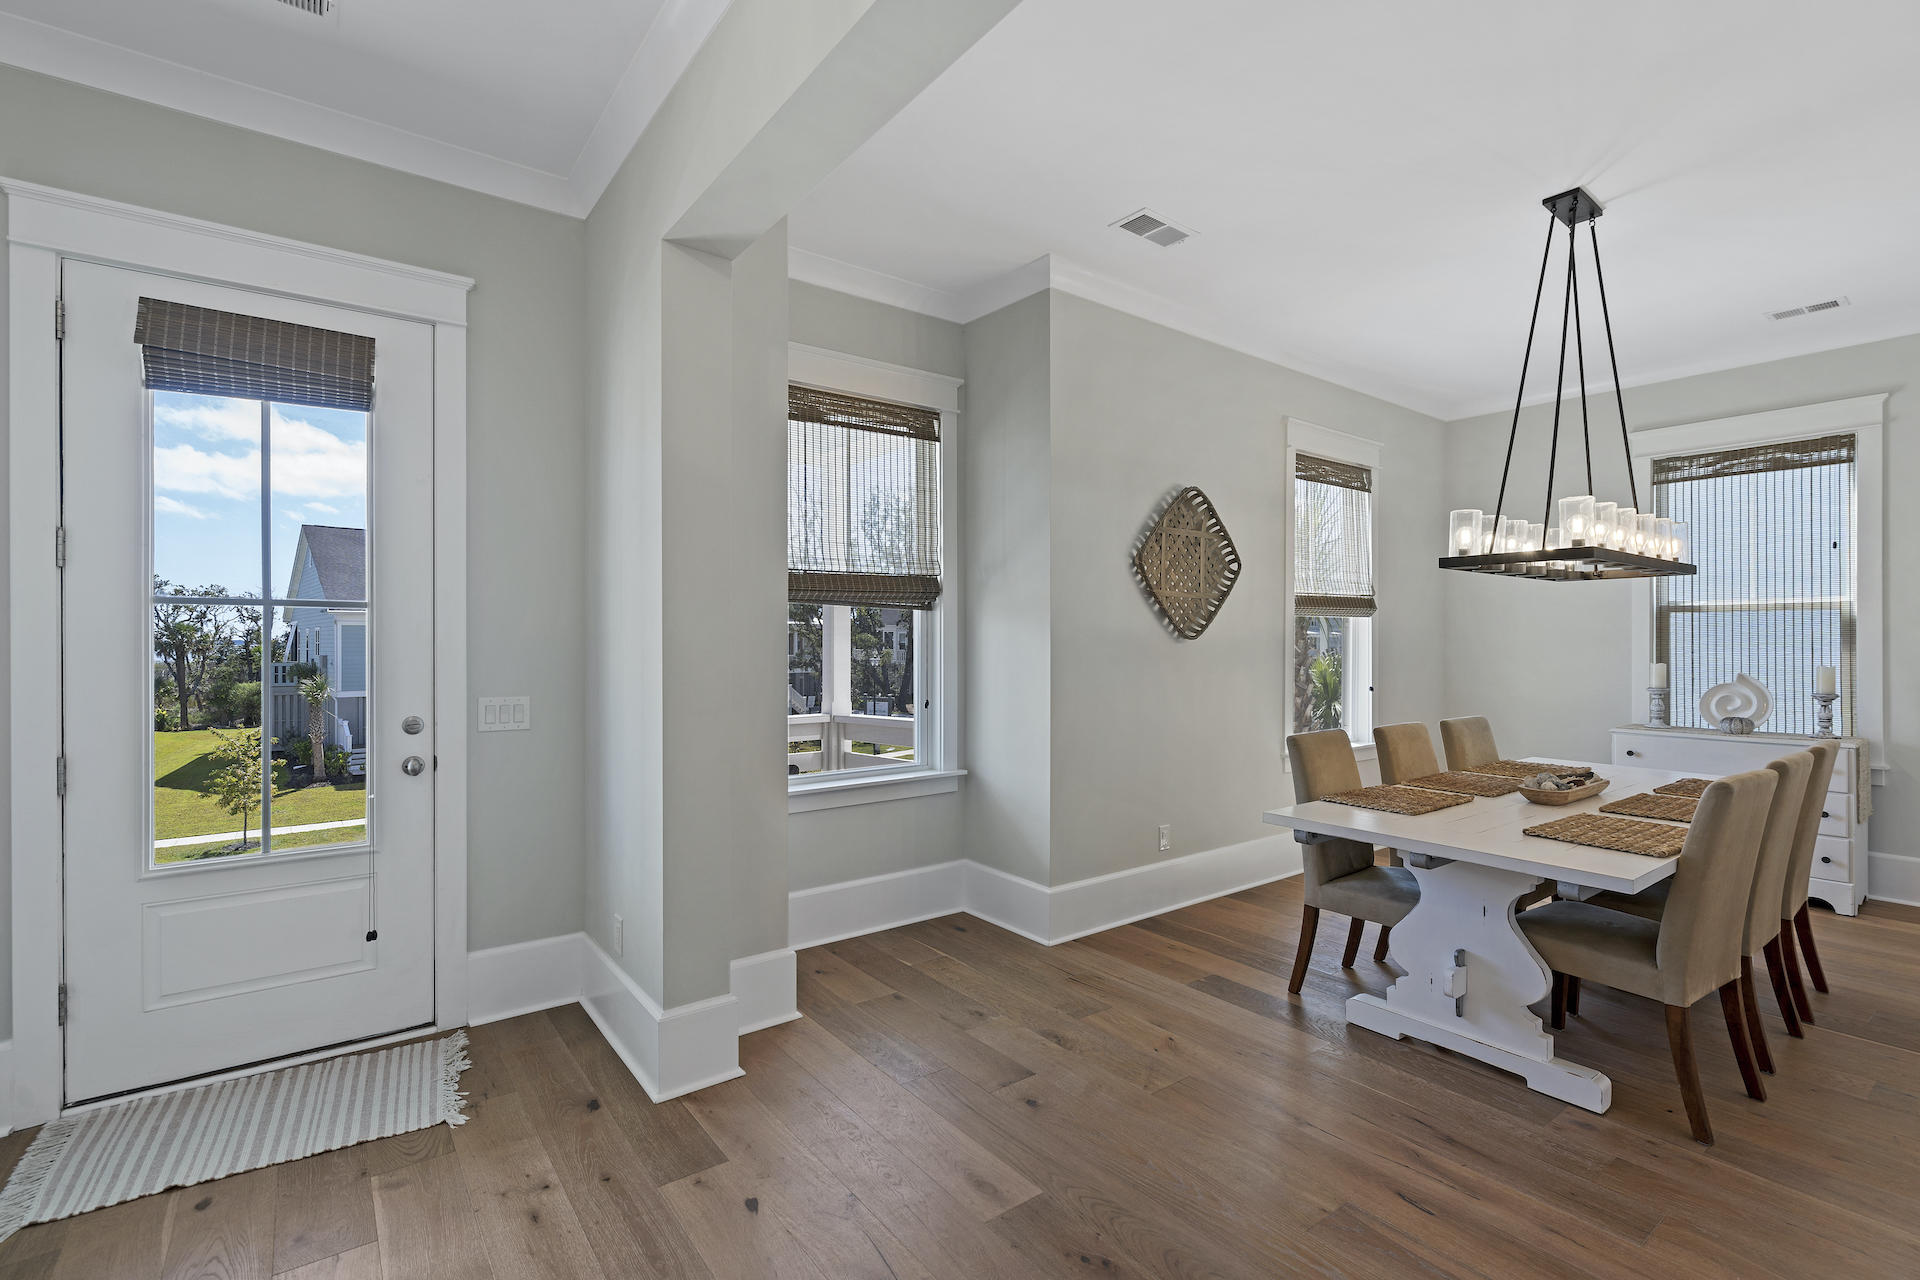 Stratton by the Sound Homes For Sale - 1509 Menhaden, Mount Pleasant, SC - 35